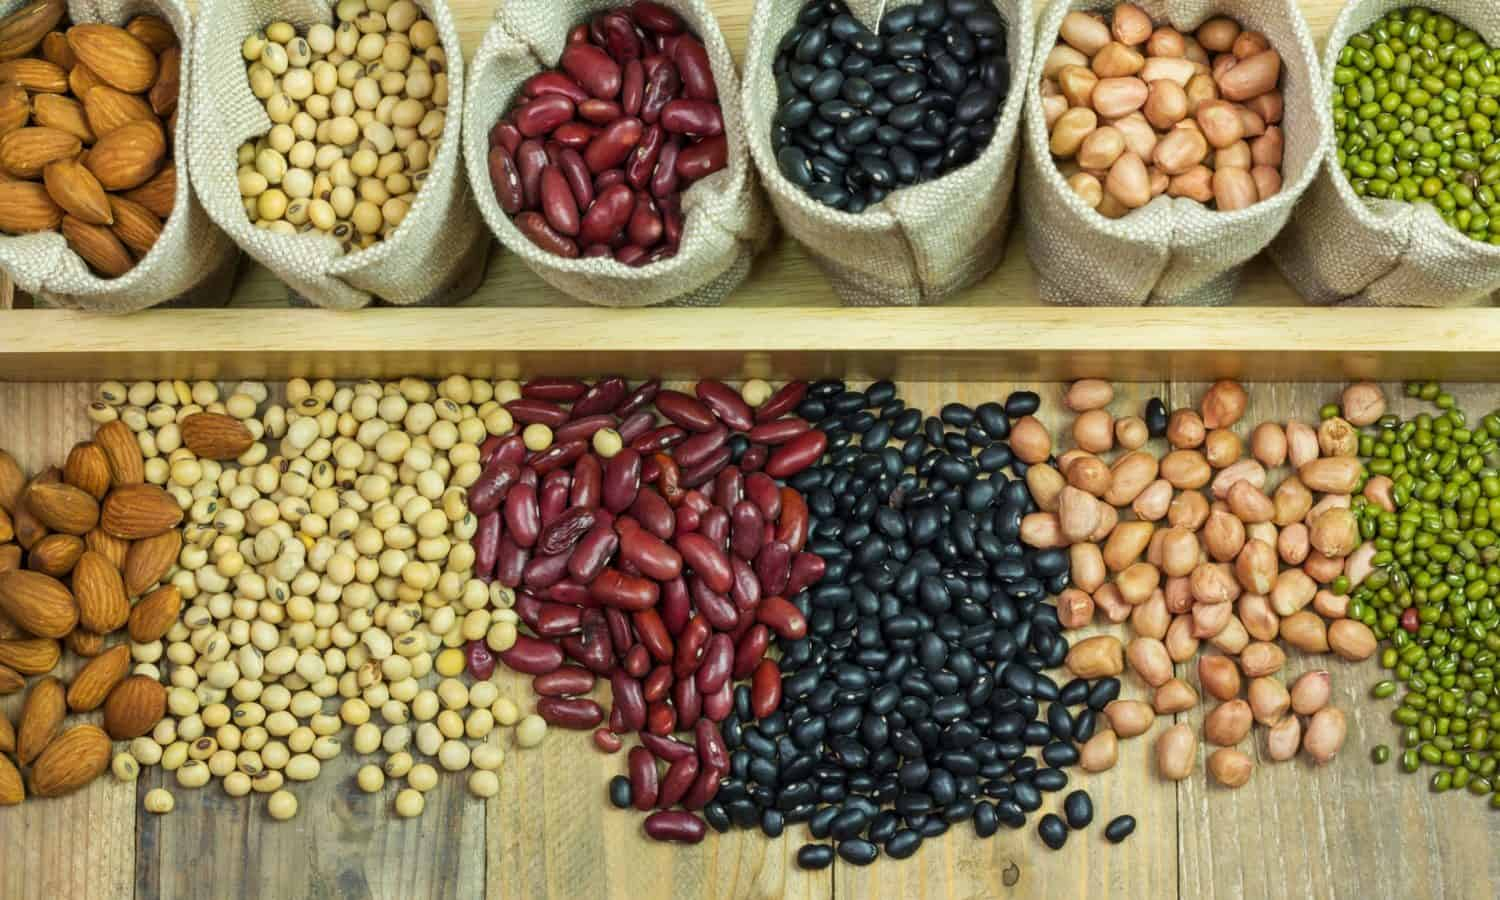 WFP's Counting the Beans tool is shedding light on the relative price of a plate of food in countries around the world.